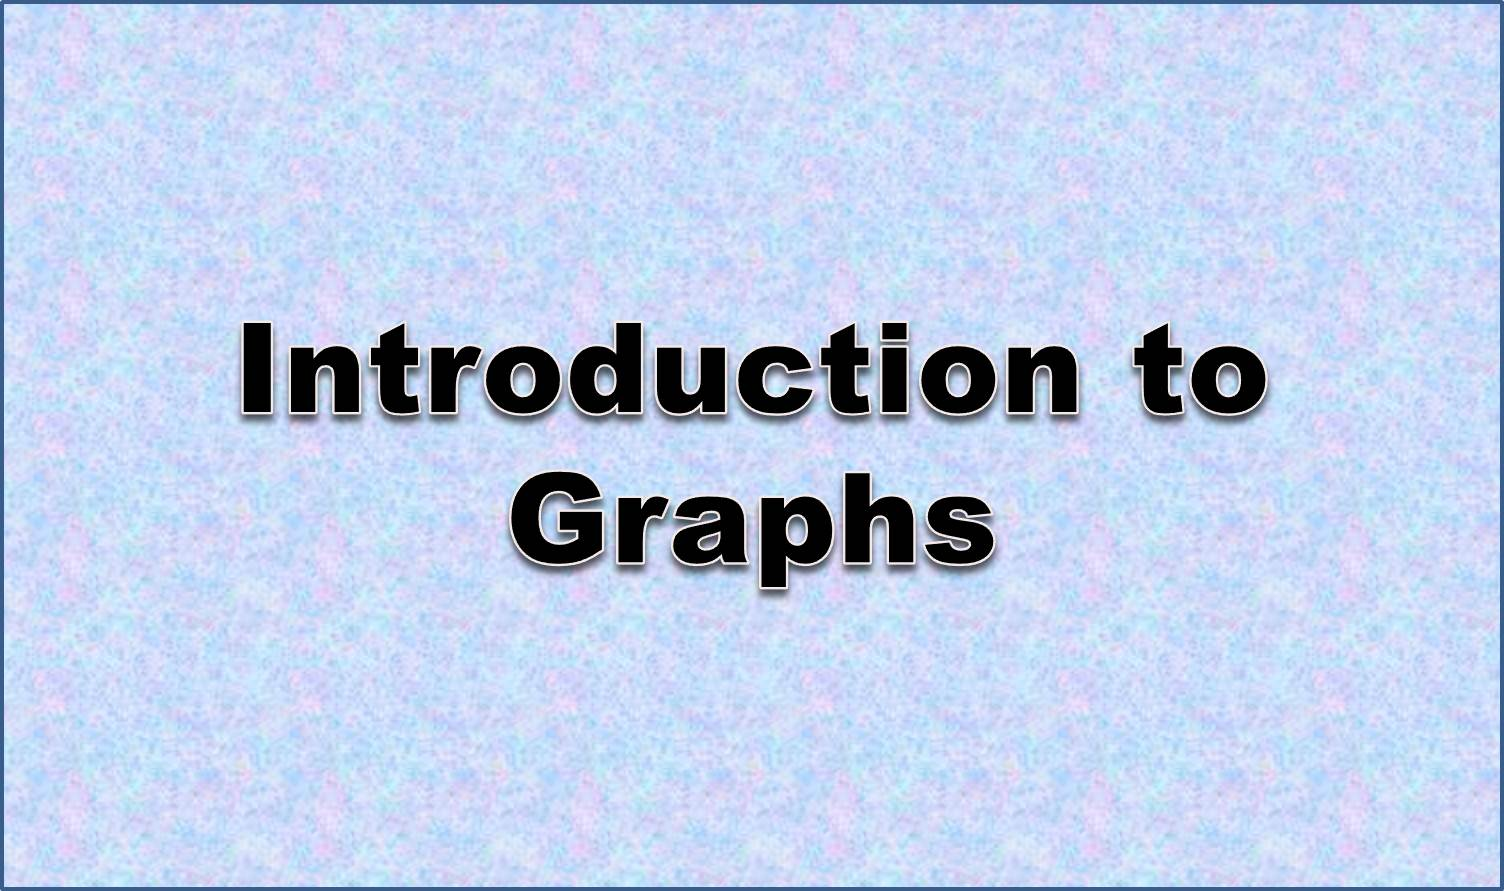 http://study.aisectonline.com/images/Coordinate plane-graphing points.jpg